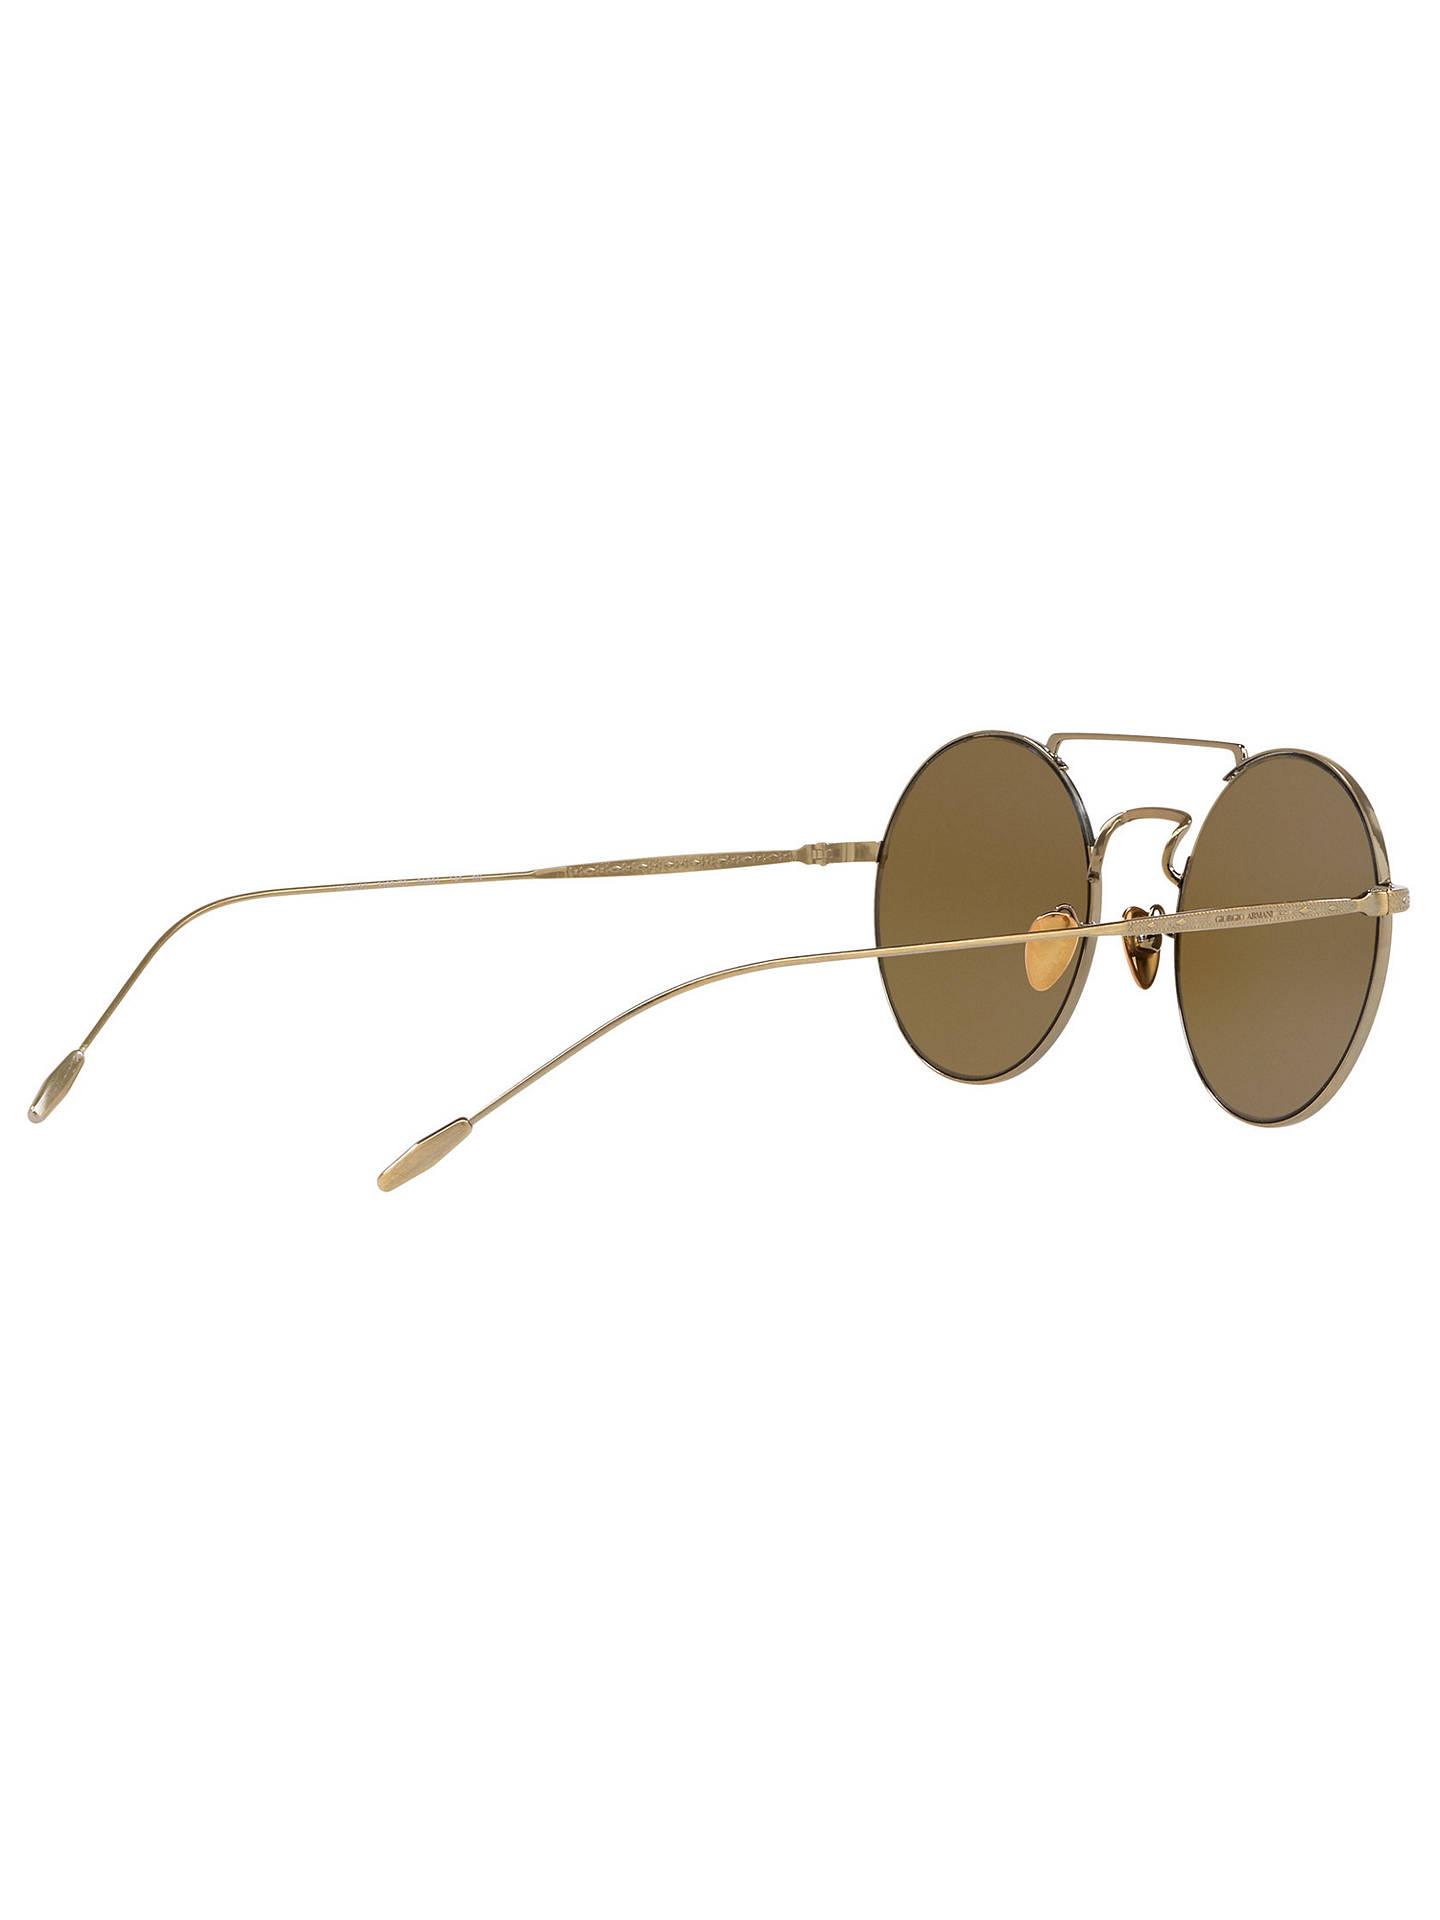 604dfe31c ... Buy Giorgio Armani AR6072 Men's Frames of Life Round Sunglasses,  Gold/Brown Online at ...